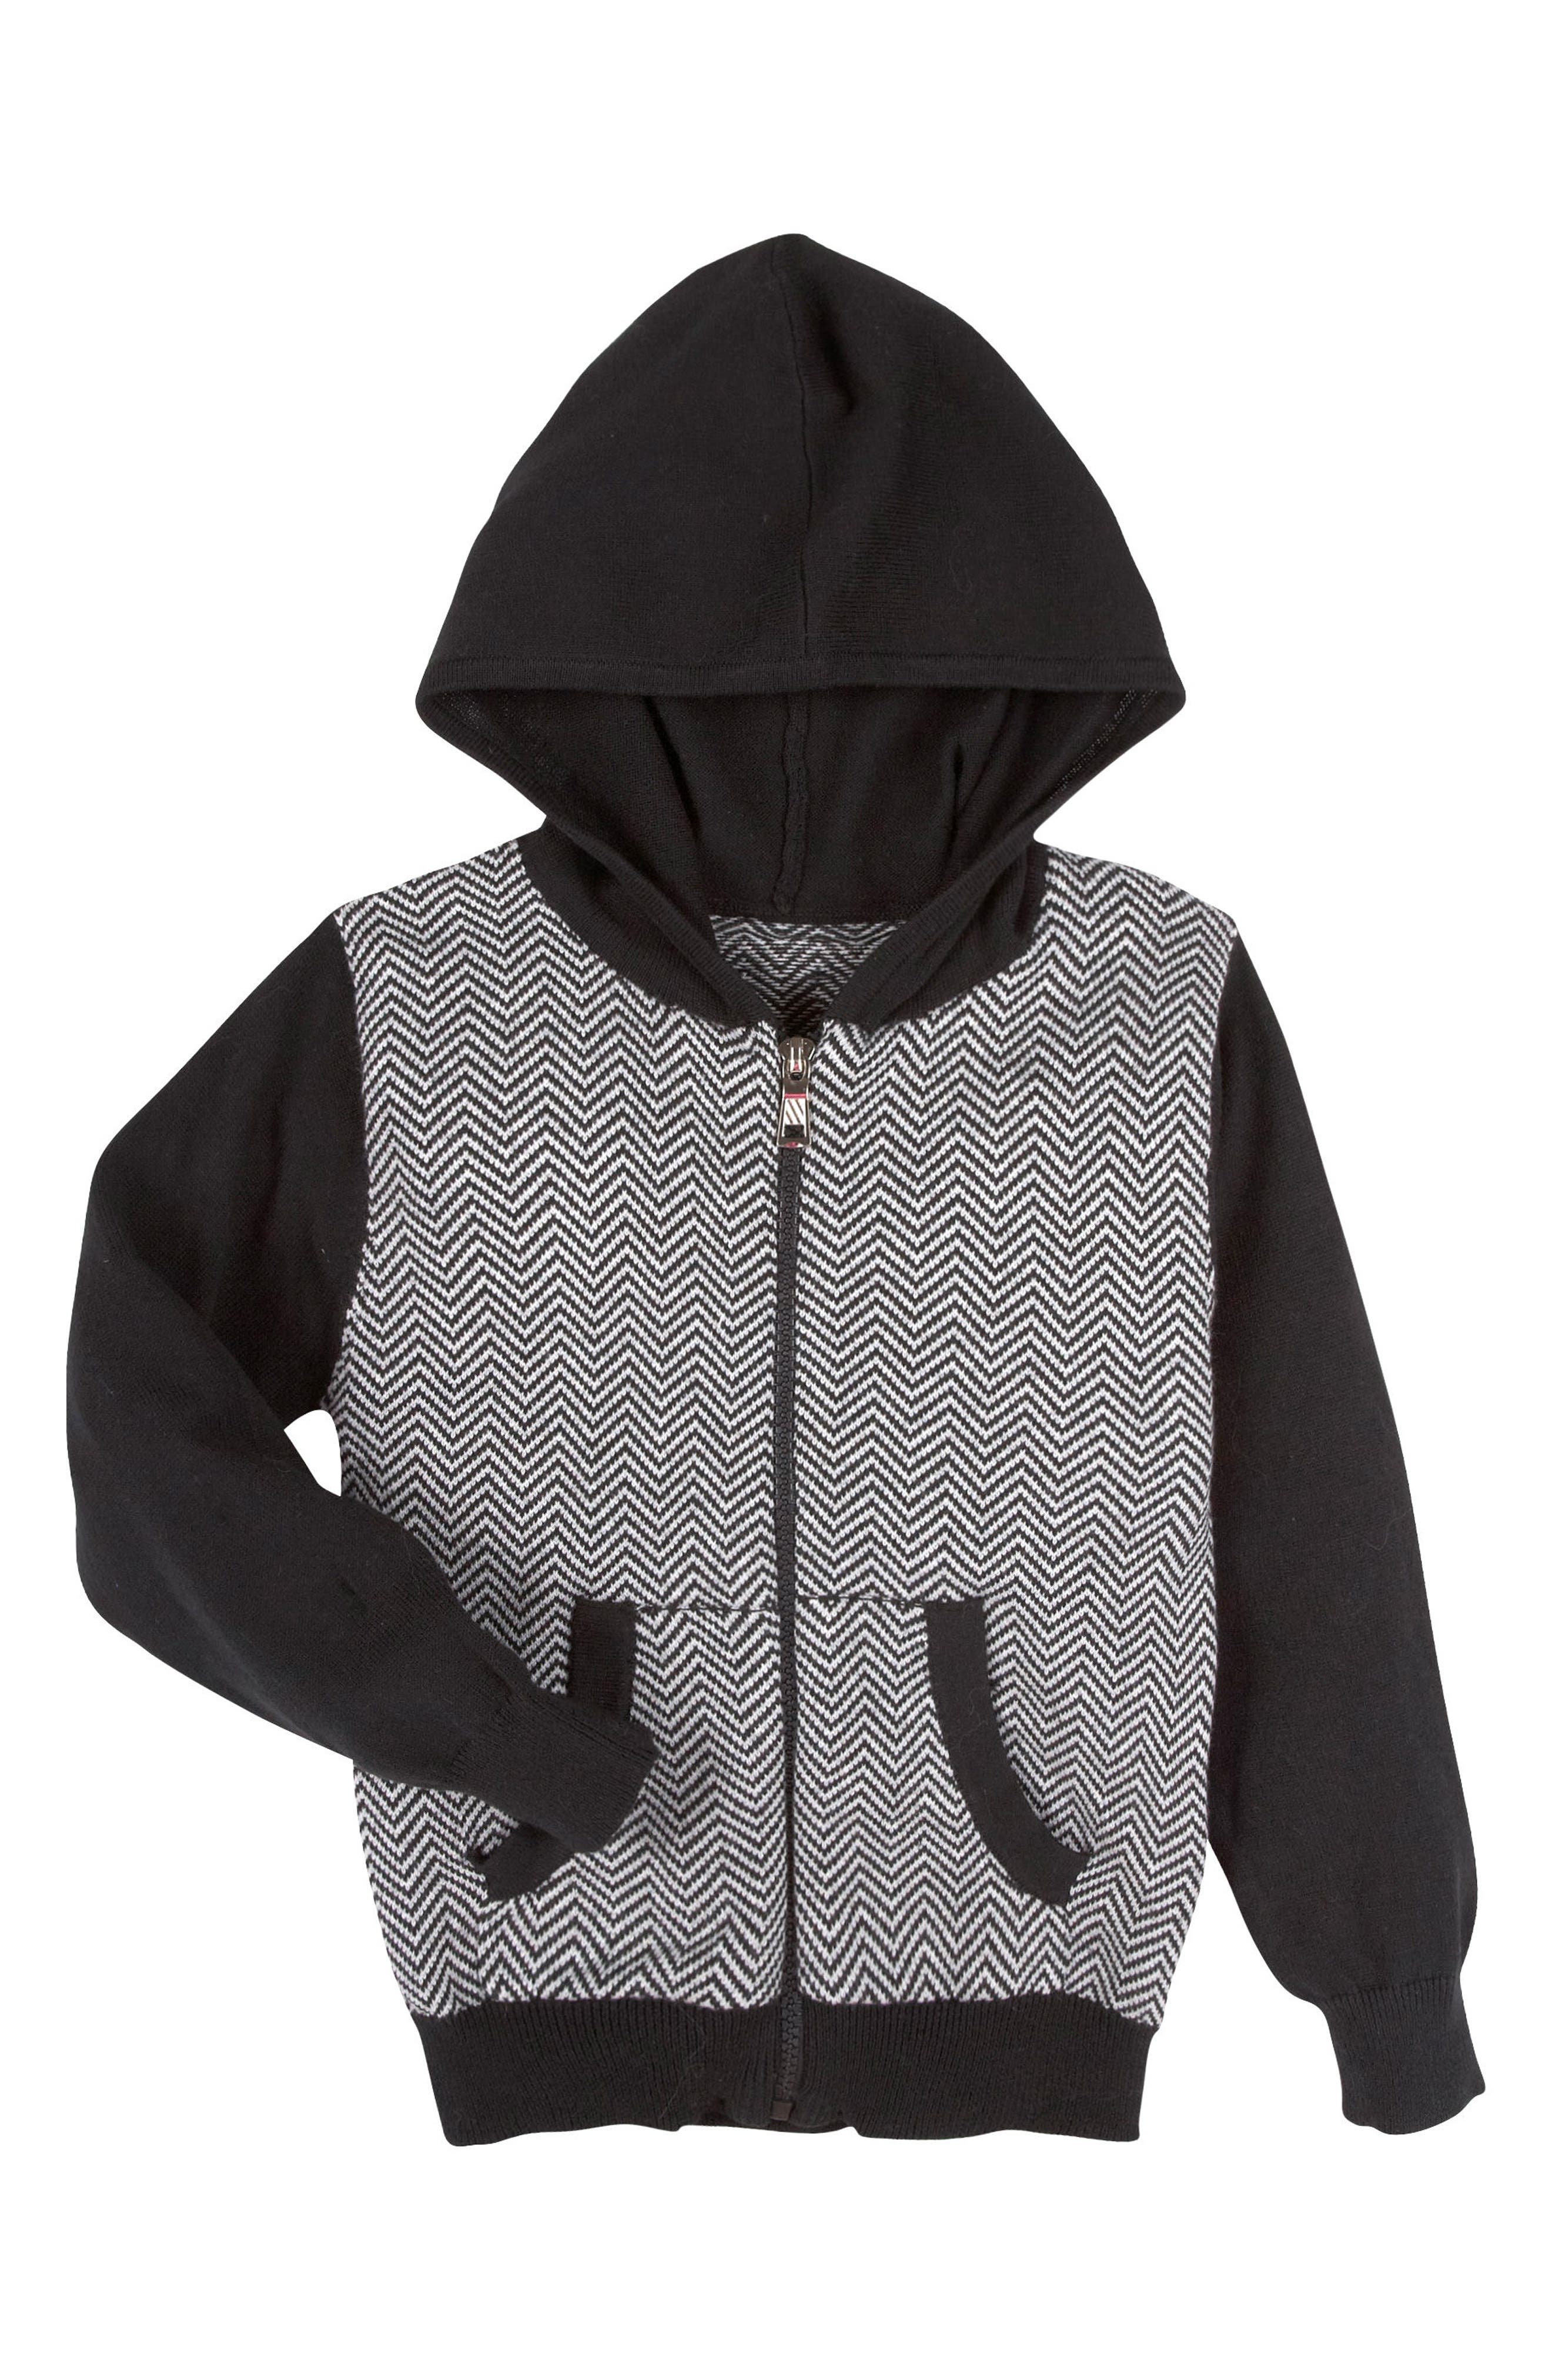 Alternate Image 1 Selected - Andy & Evan Herringbone Hoodie (Baby Boys)